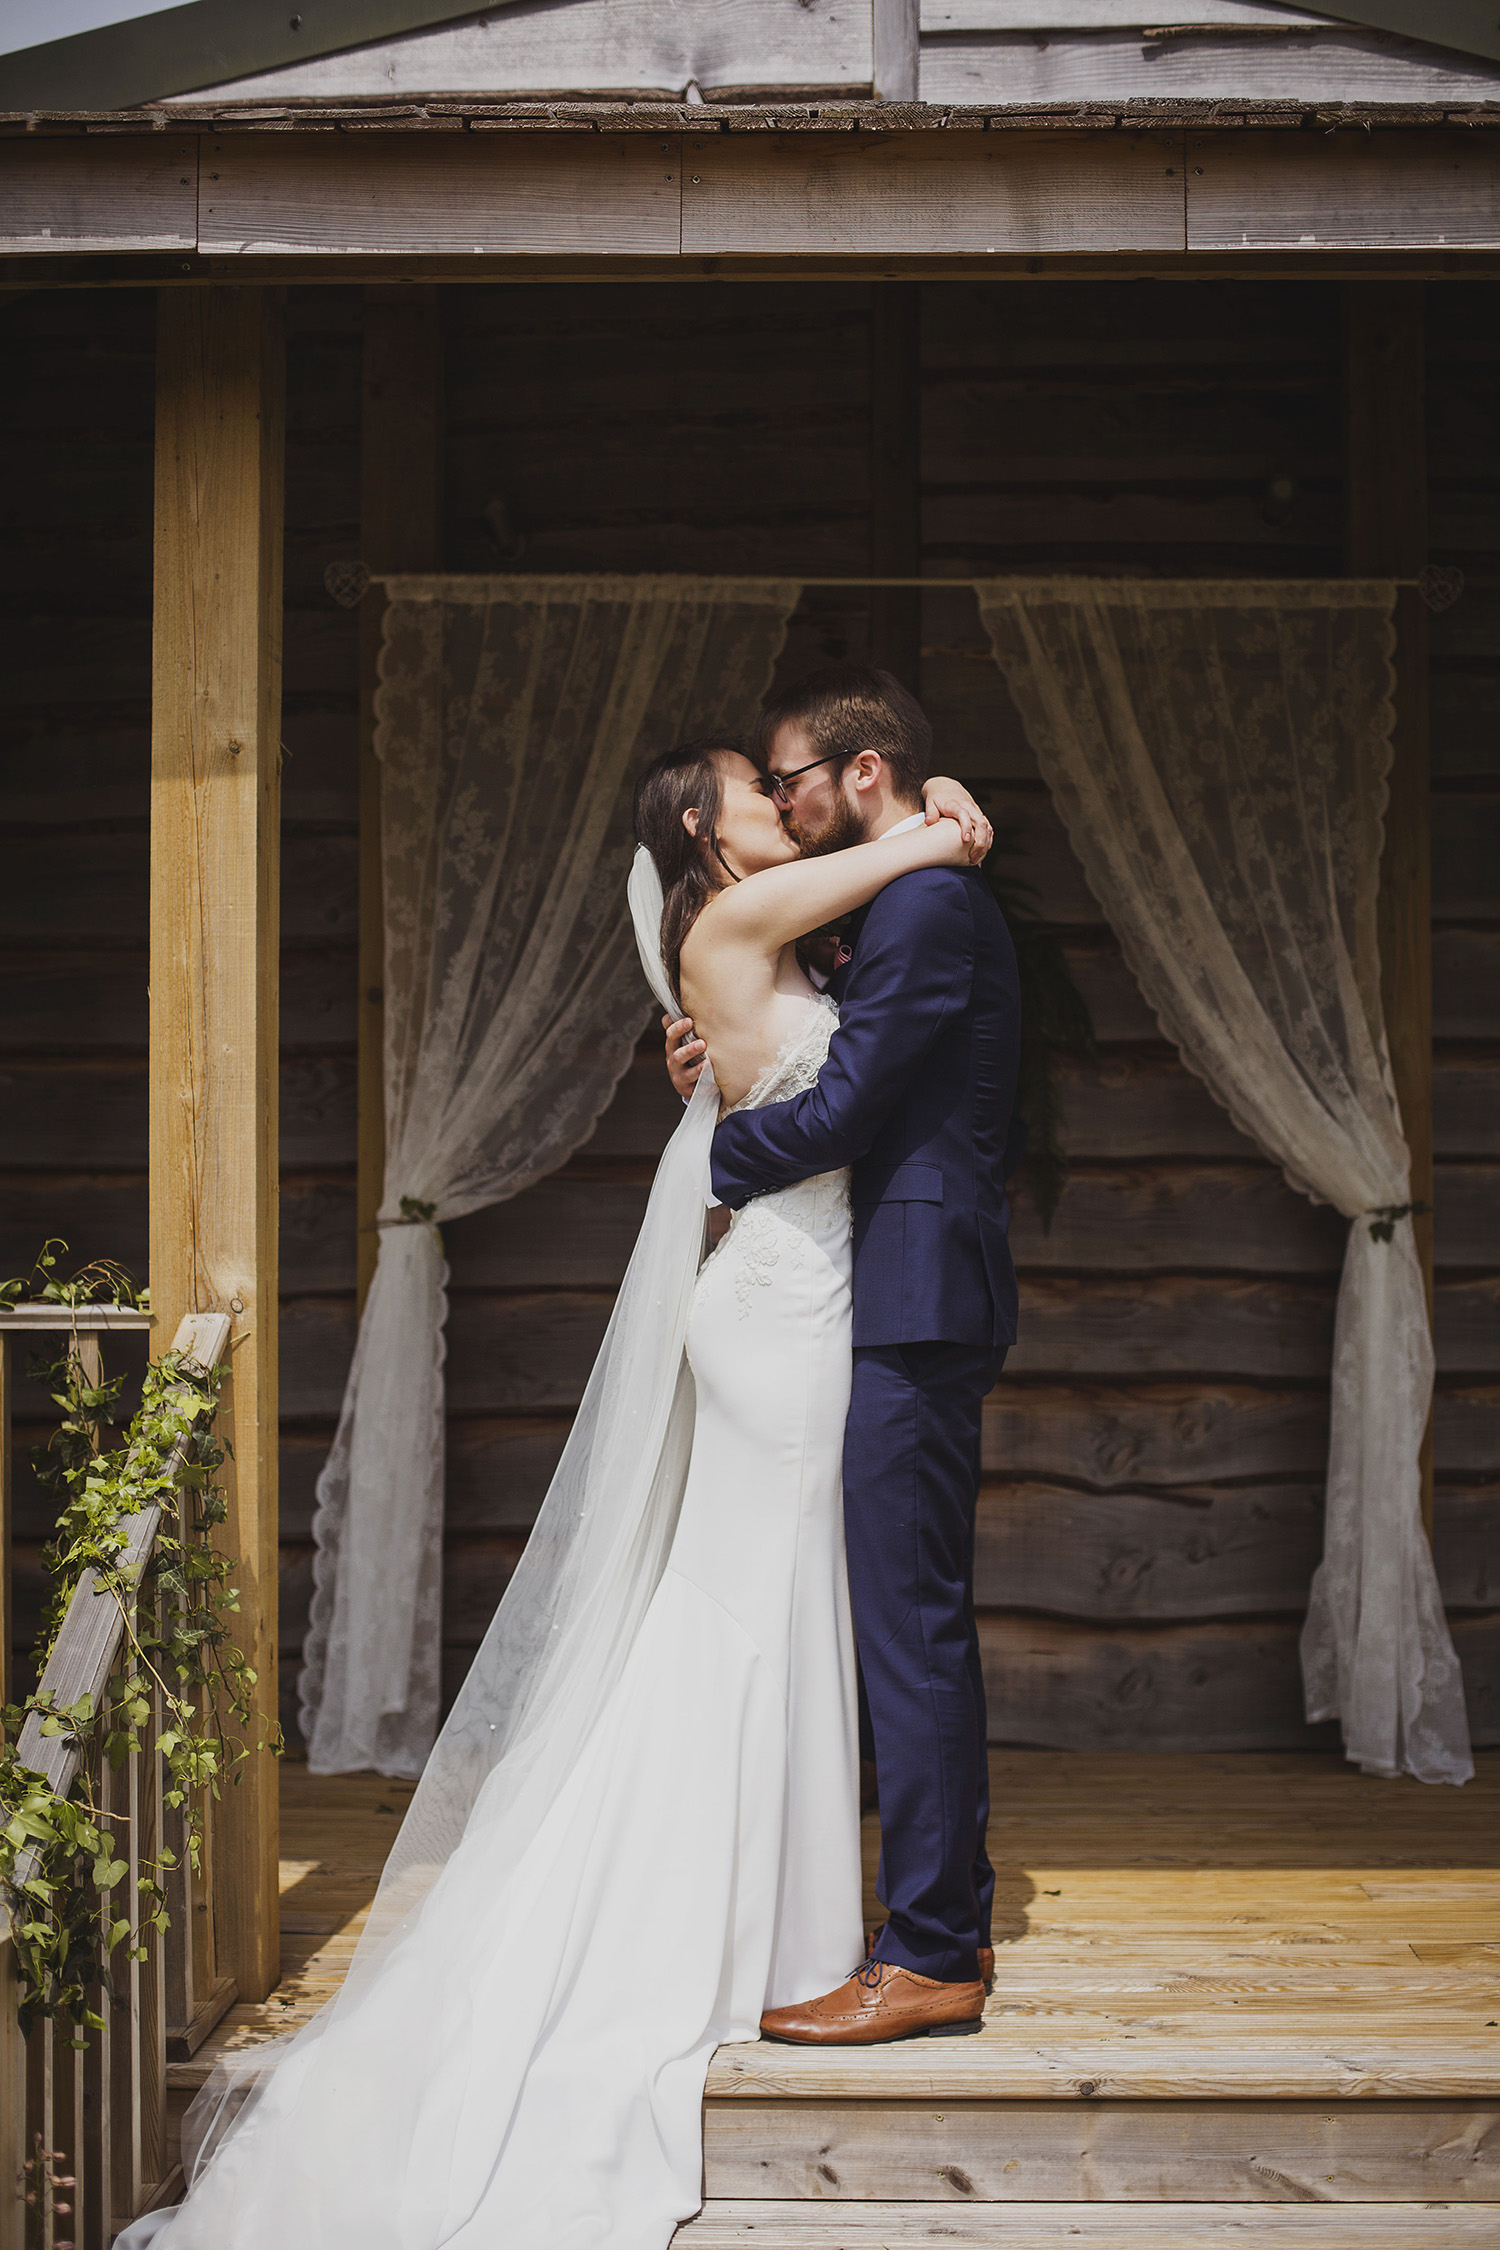 first kiss just married at cott farm barn wedding venue somerset